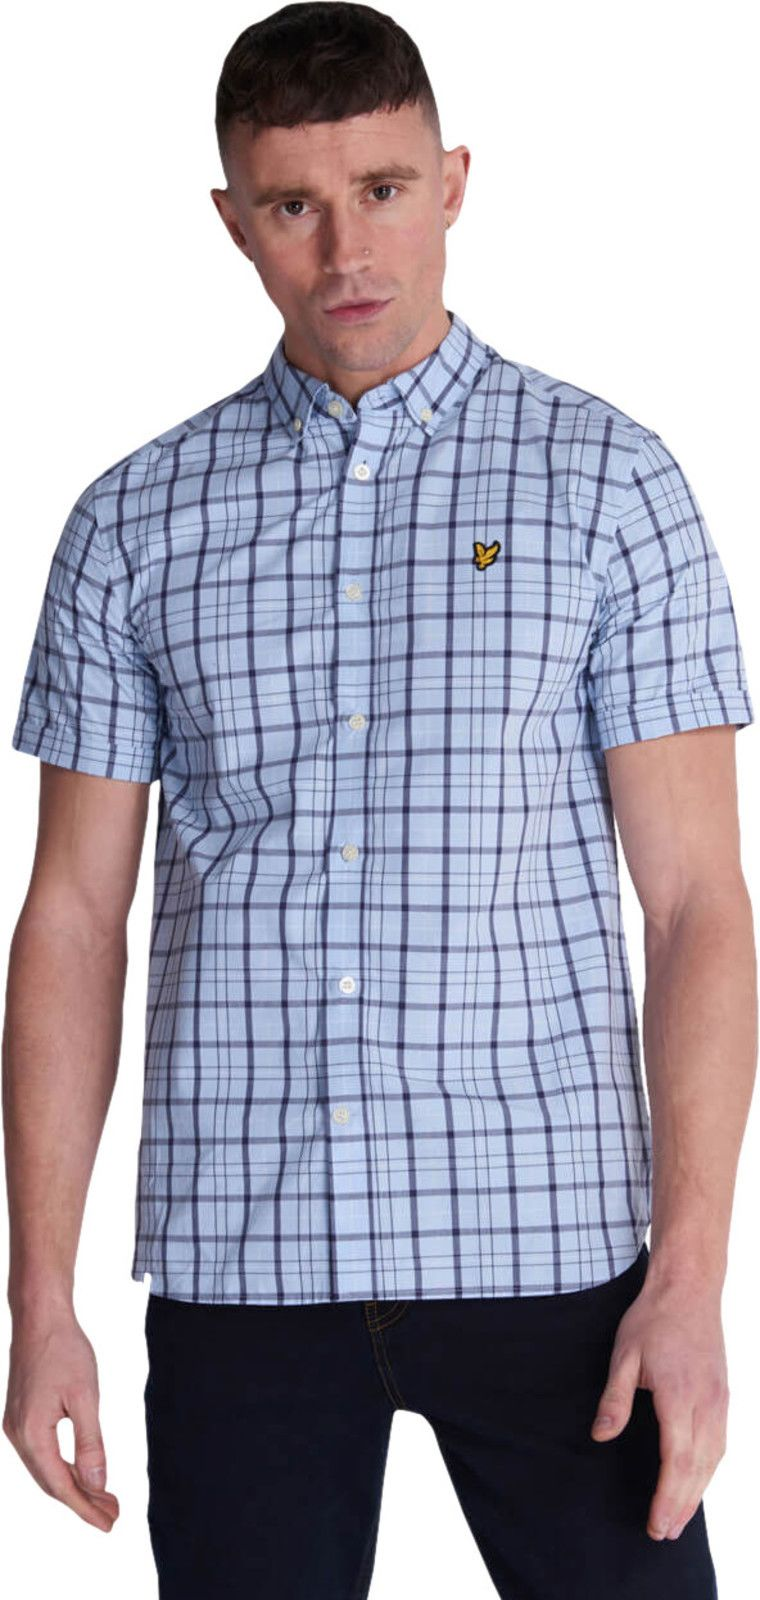 Lyle & Scott Short Sleeve Check Shirt Light Blue